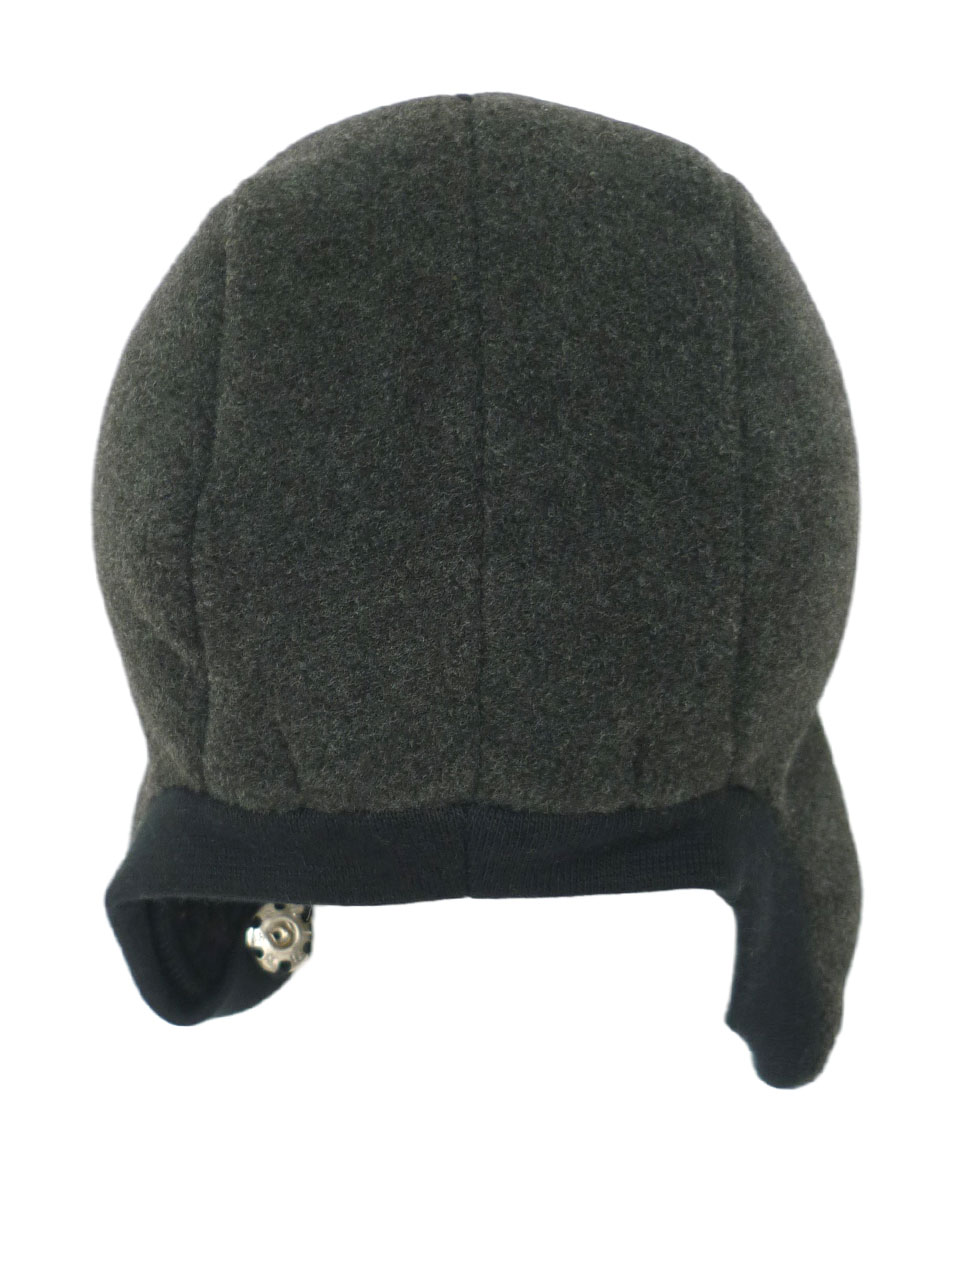 Hat speedy button fleece/fur - black/grey